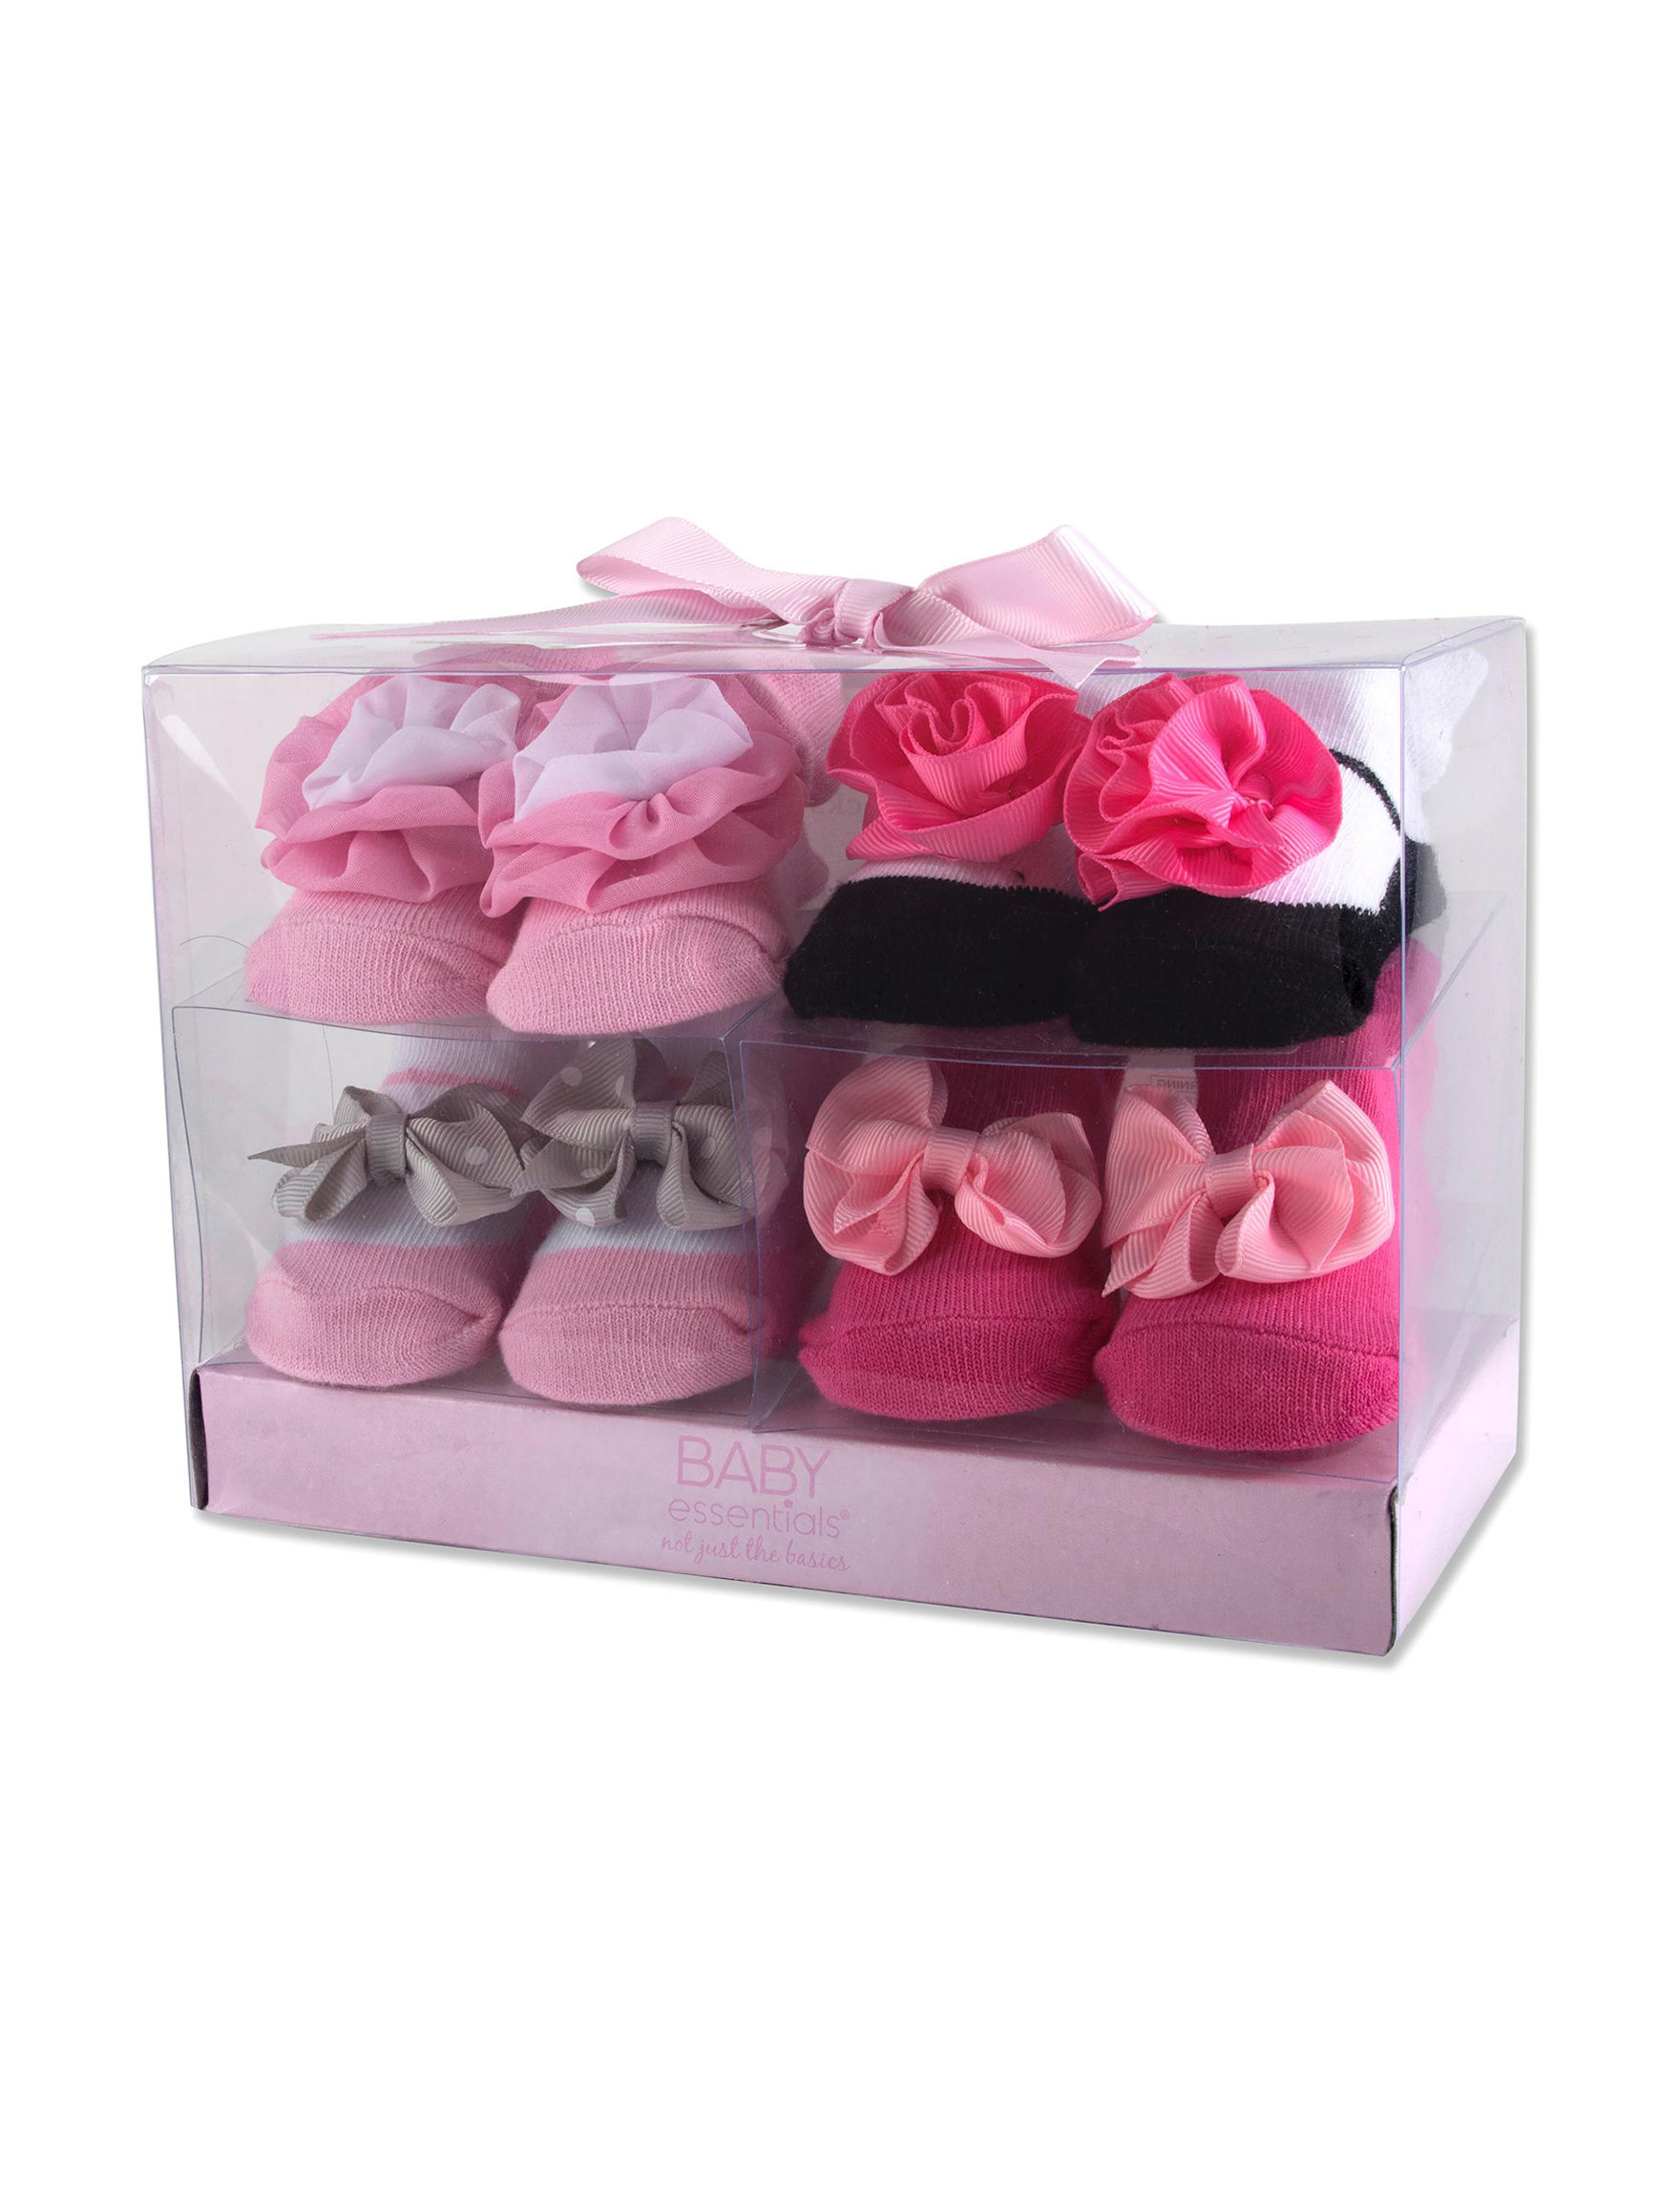 Baby Essentials 4 Pk Flower Appliqu Sock Set Baby 0 9 Mos